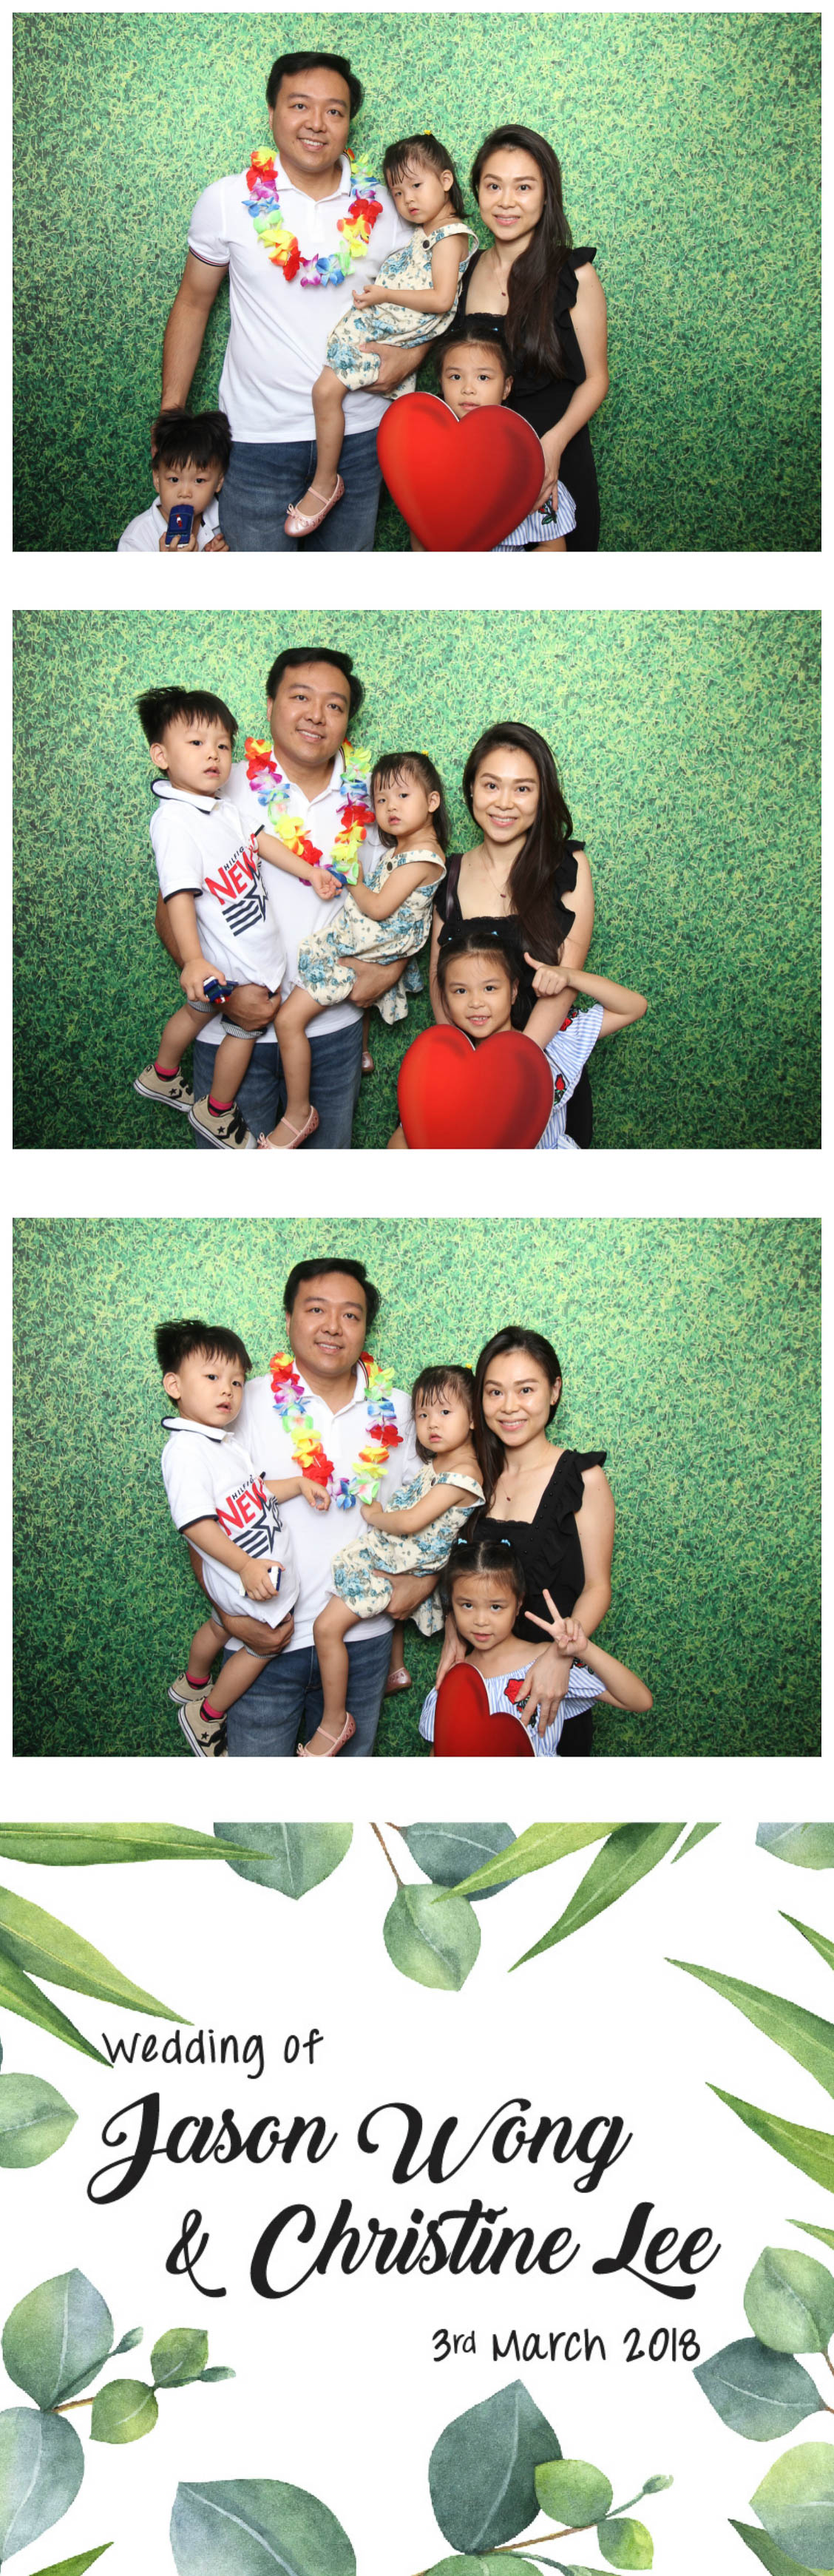 Photobooth 0302-1